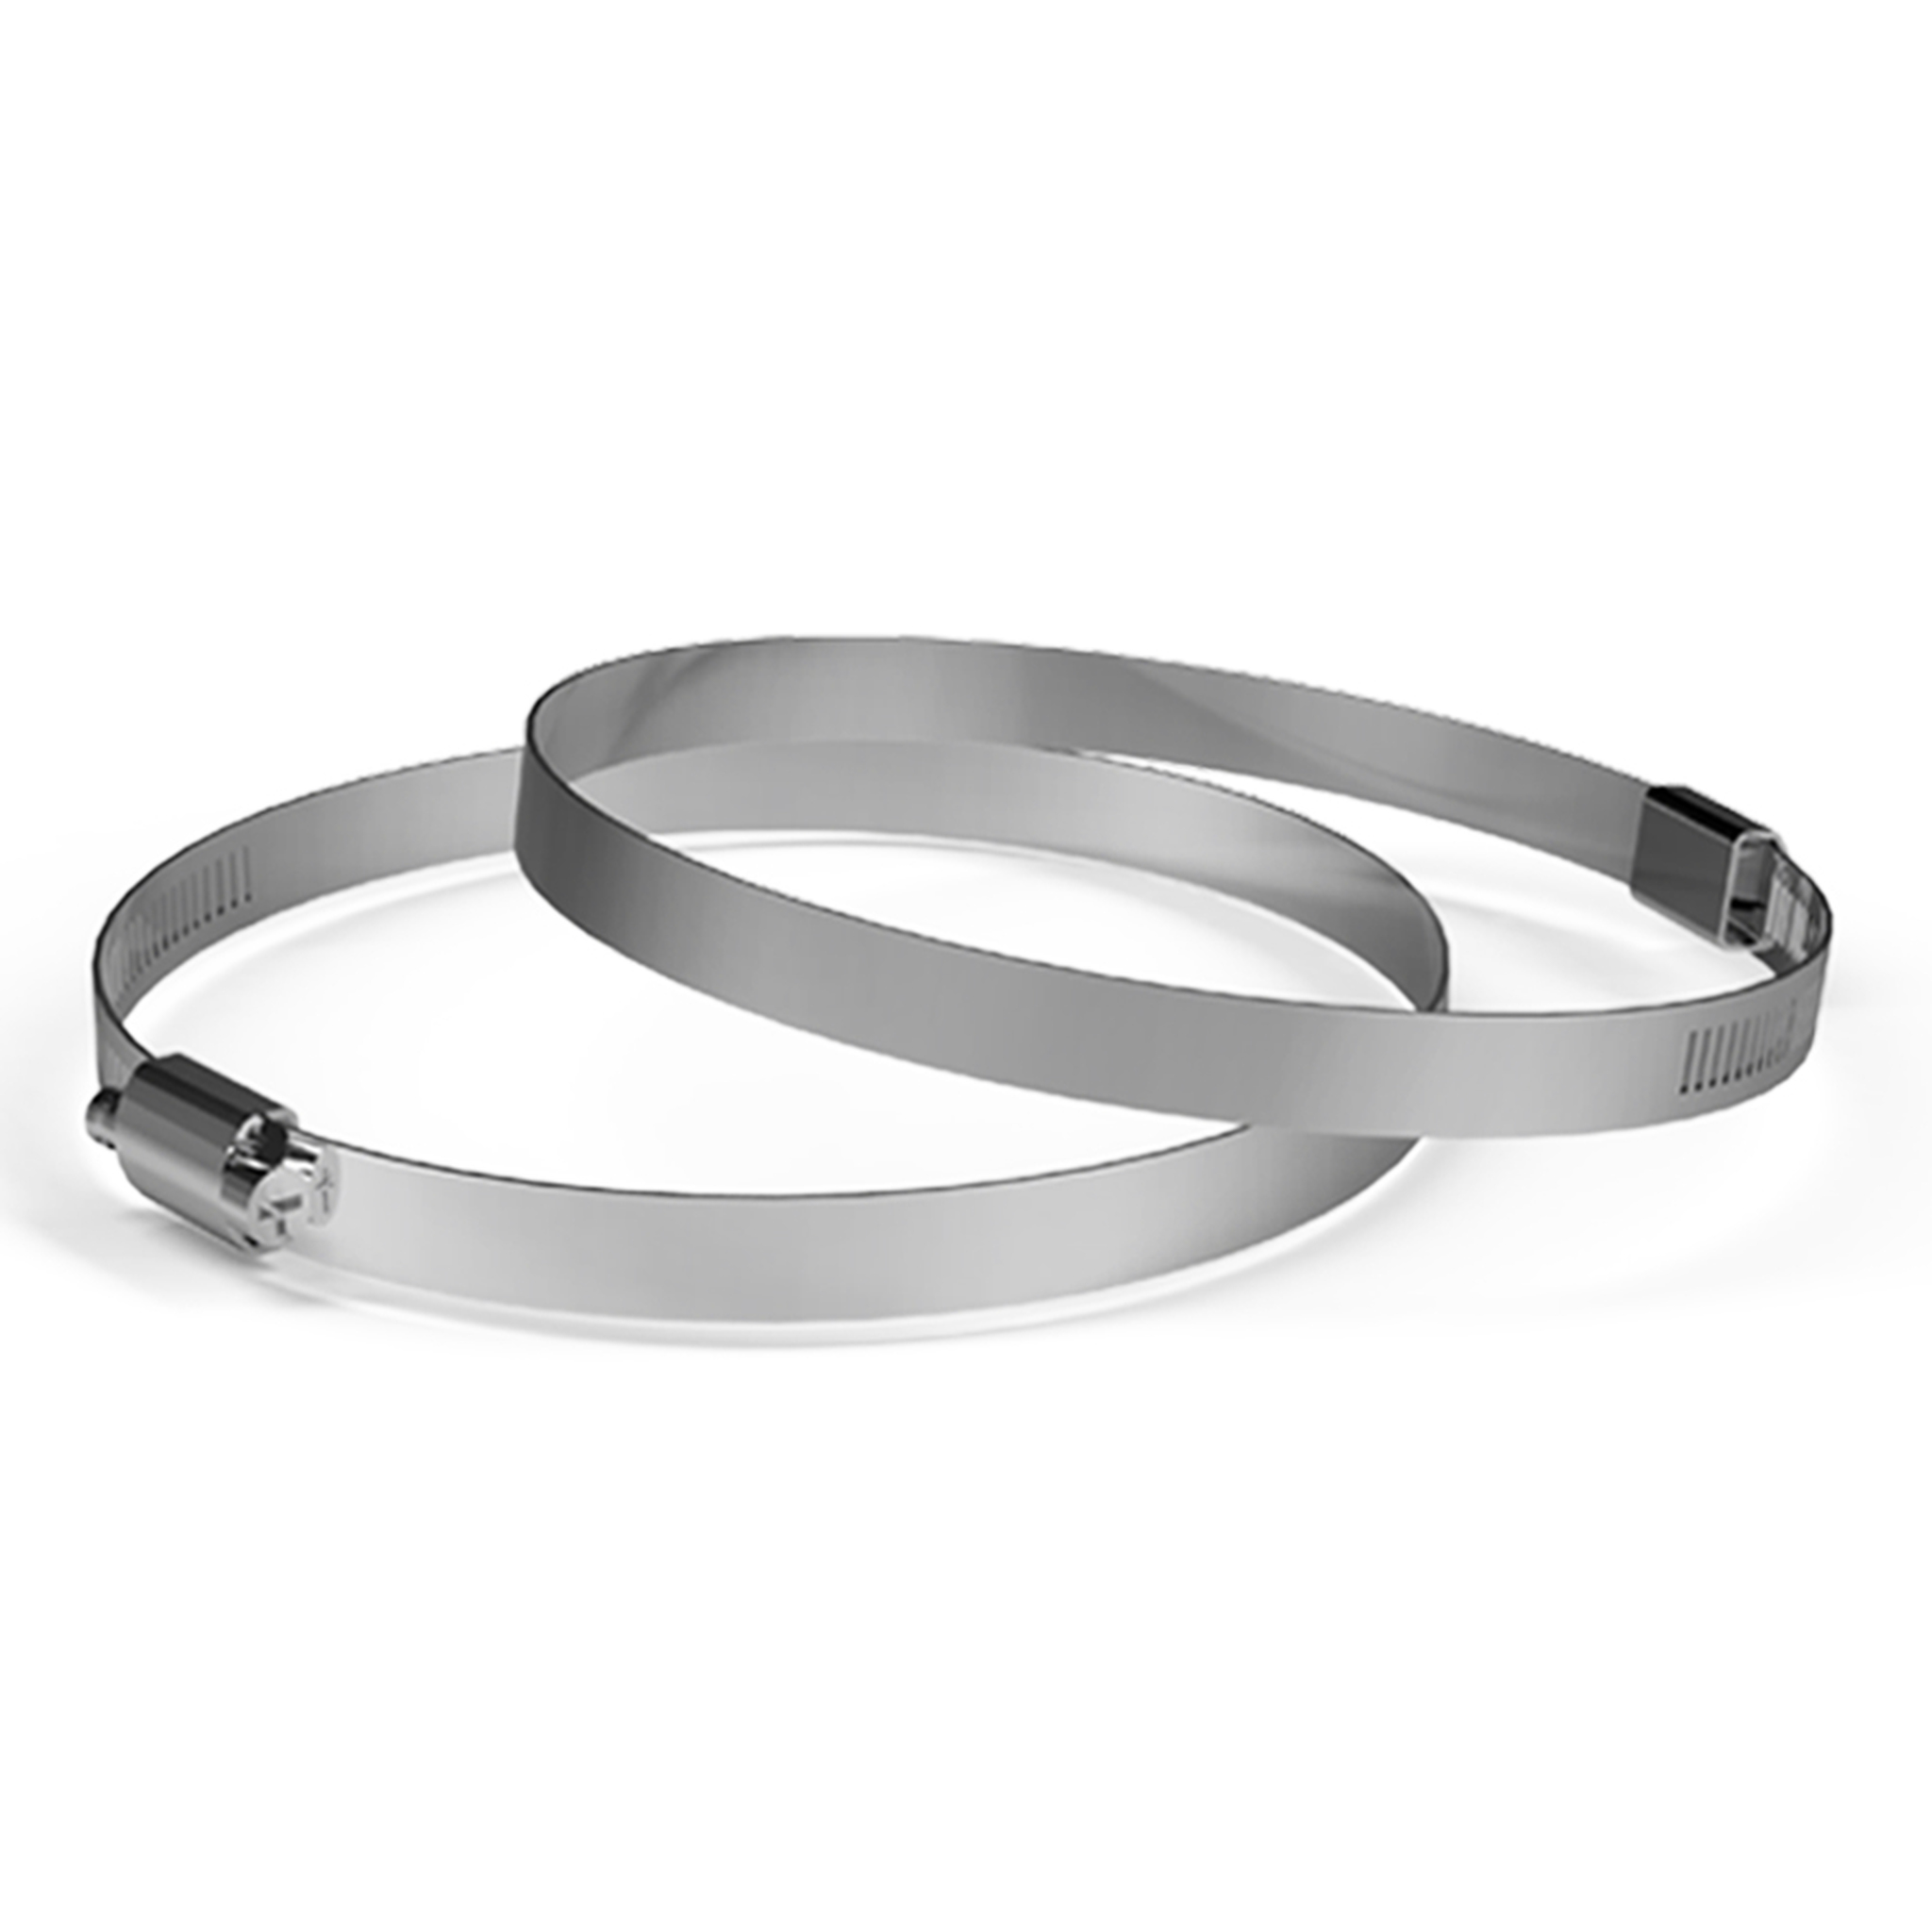 Duct Clamp 4 inch 2 pack product image